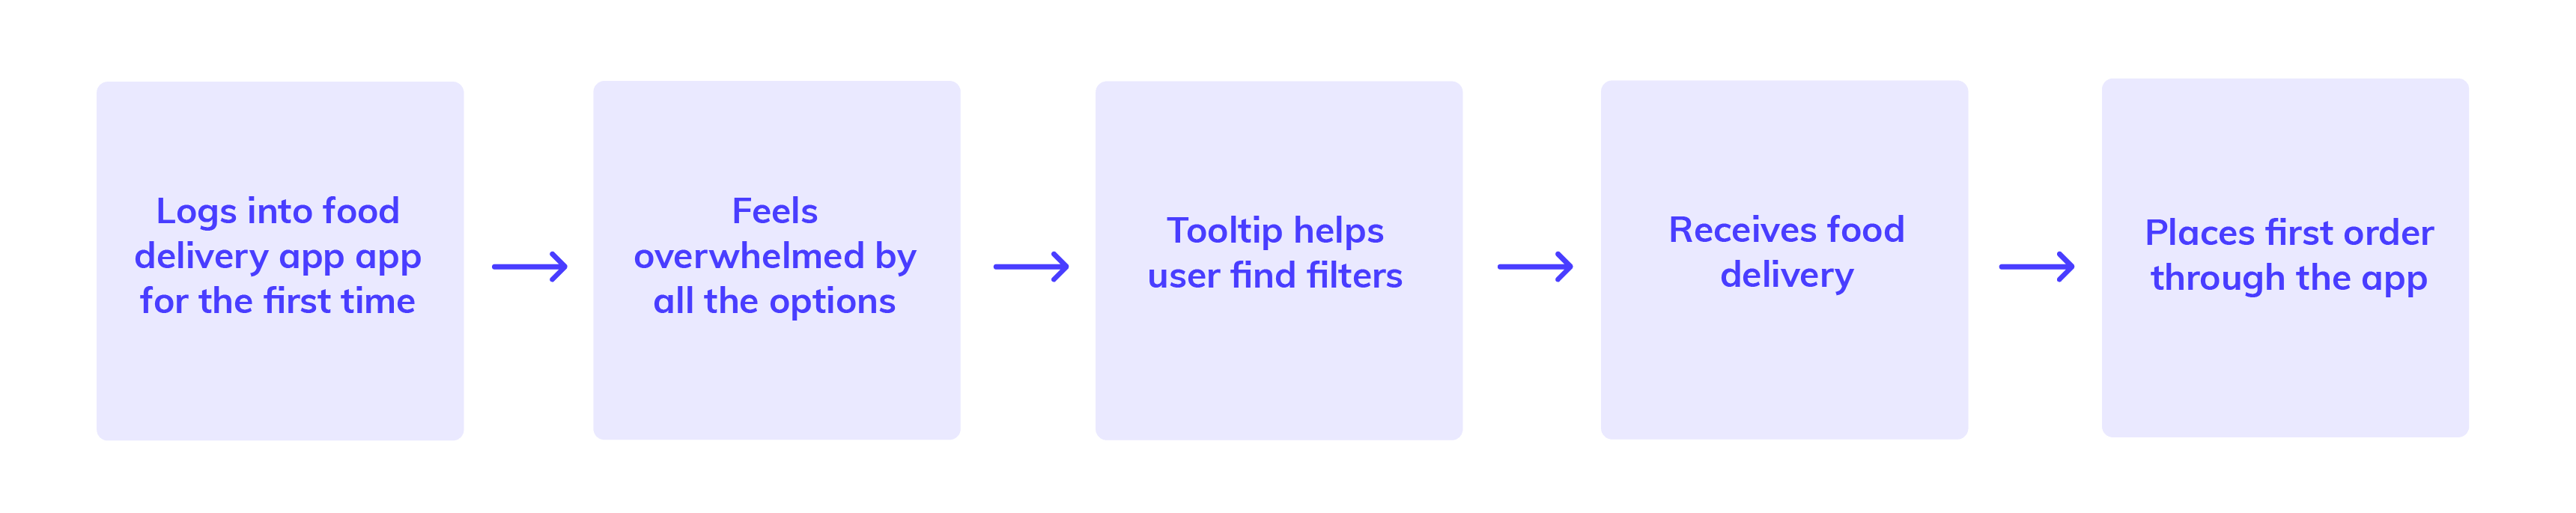 simple linear user journey map example from Appcues